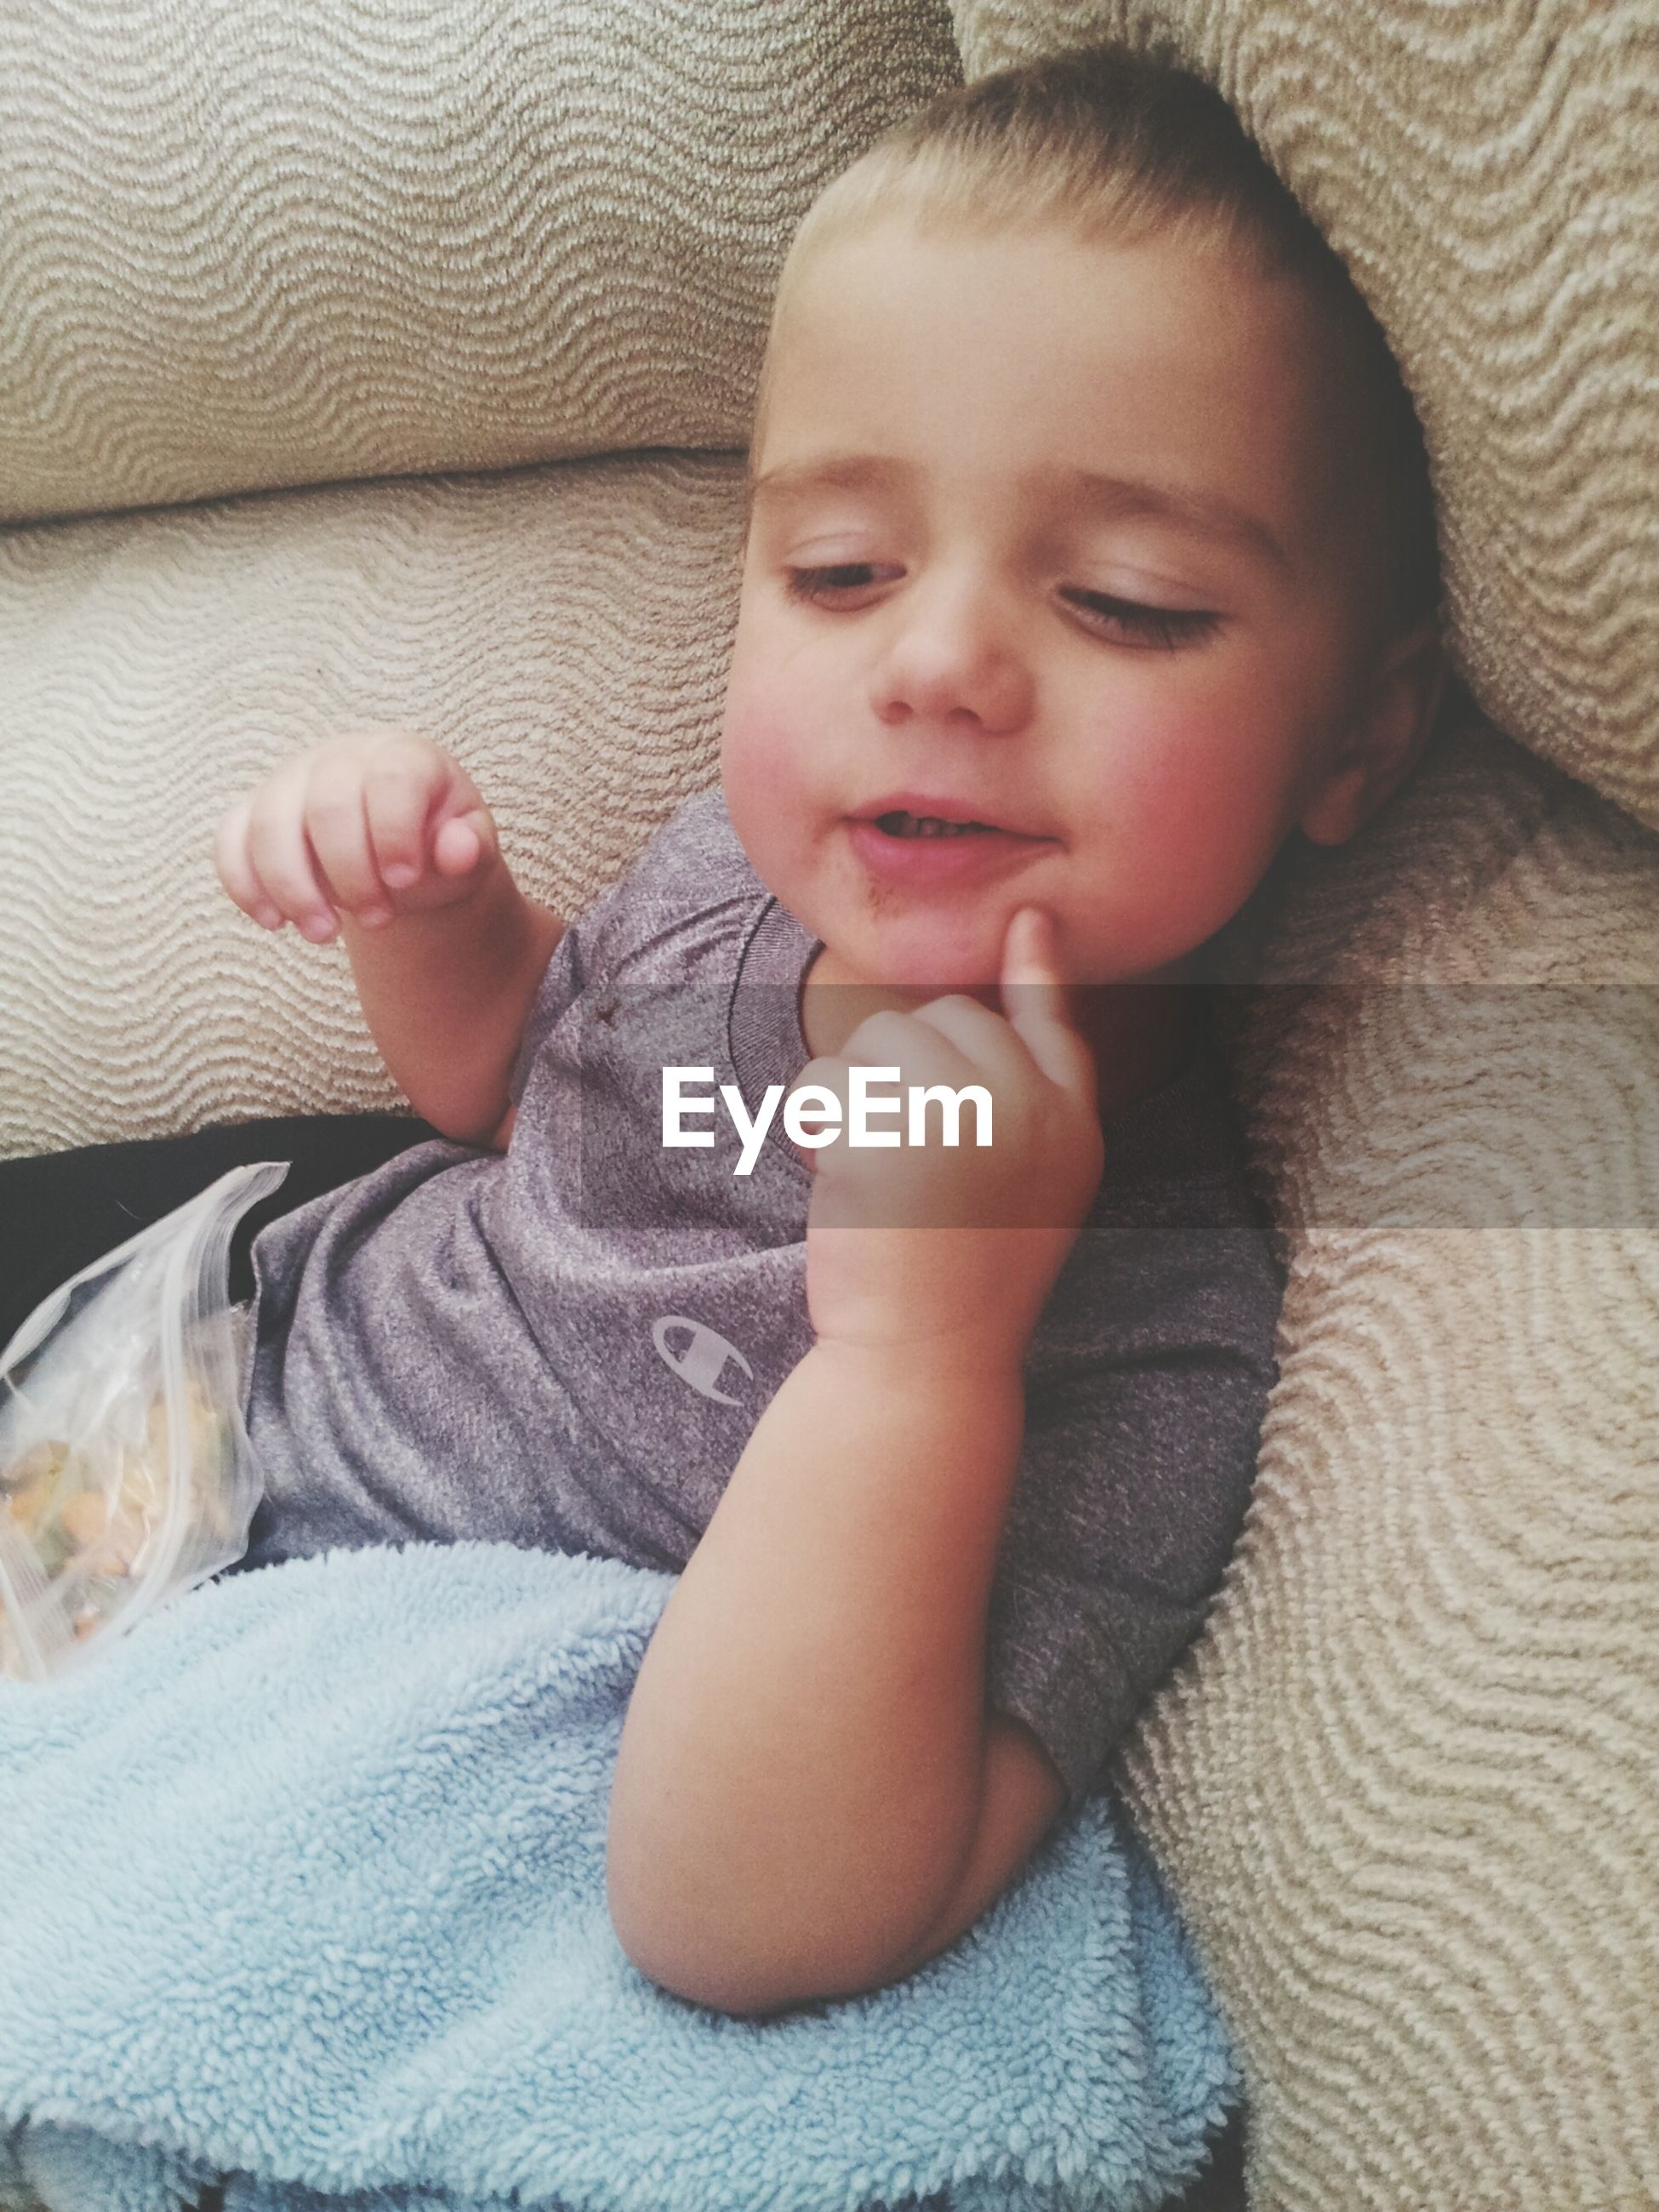 indoors, childhood, relaxation, person, bed, innocence, baby, babyhood, cute, toddler, casual clothing, lifestyles, home interior, lying down, sleeping, elementary age, resting, leisure activity